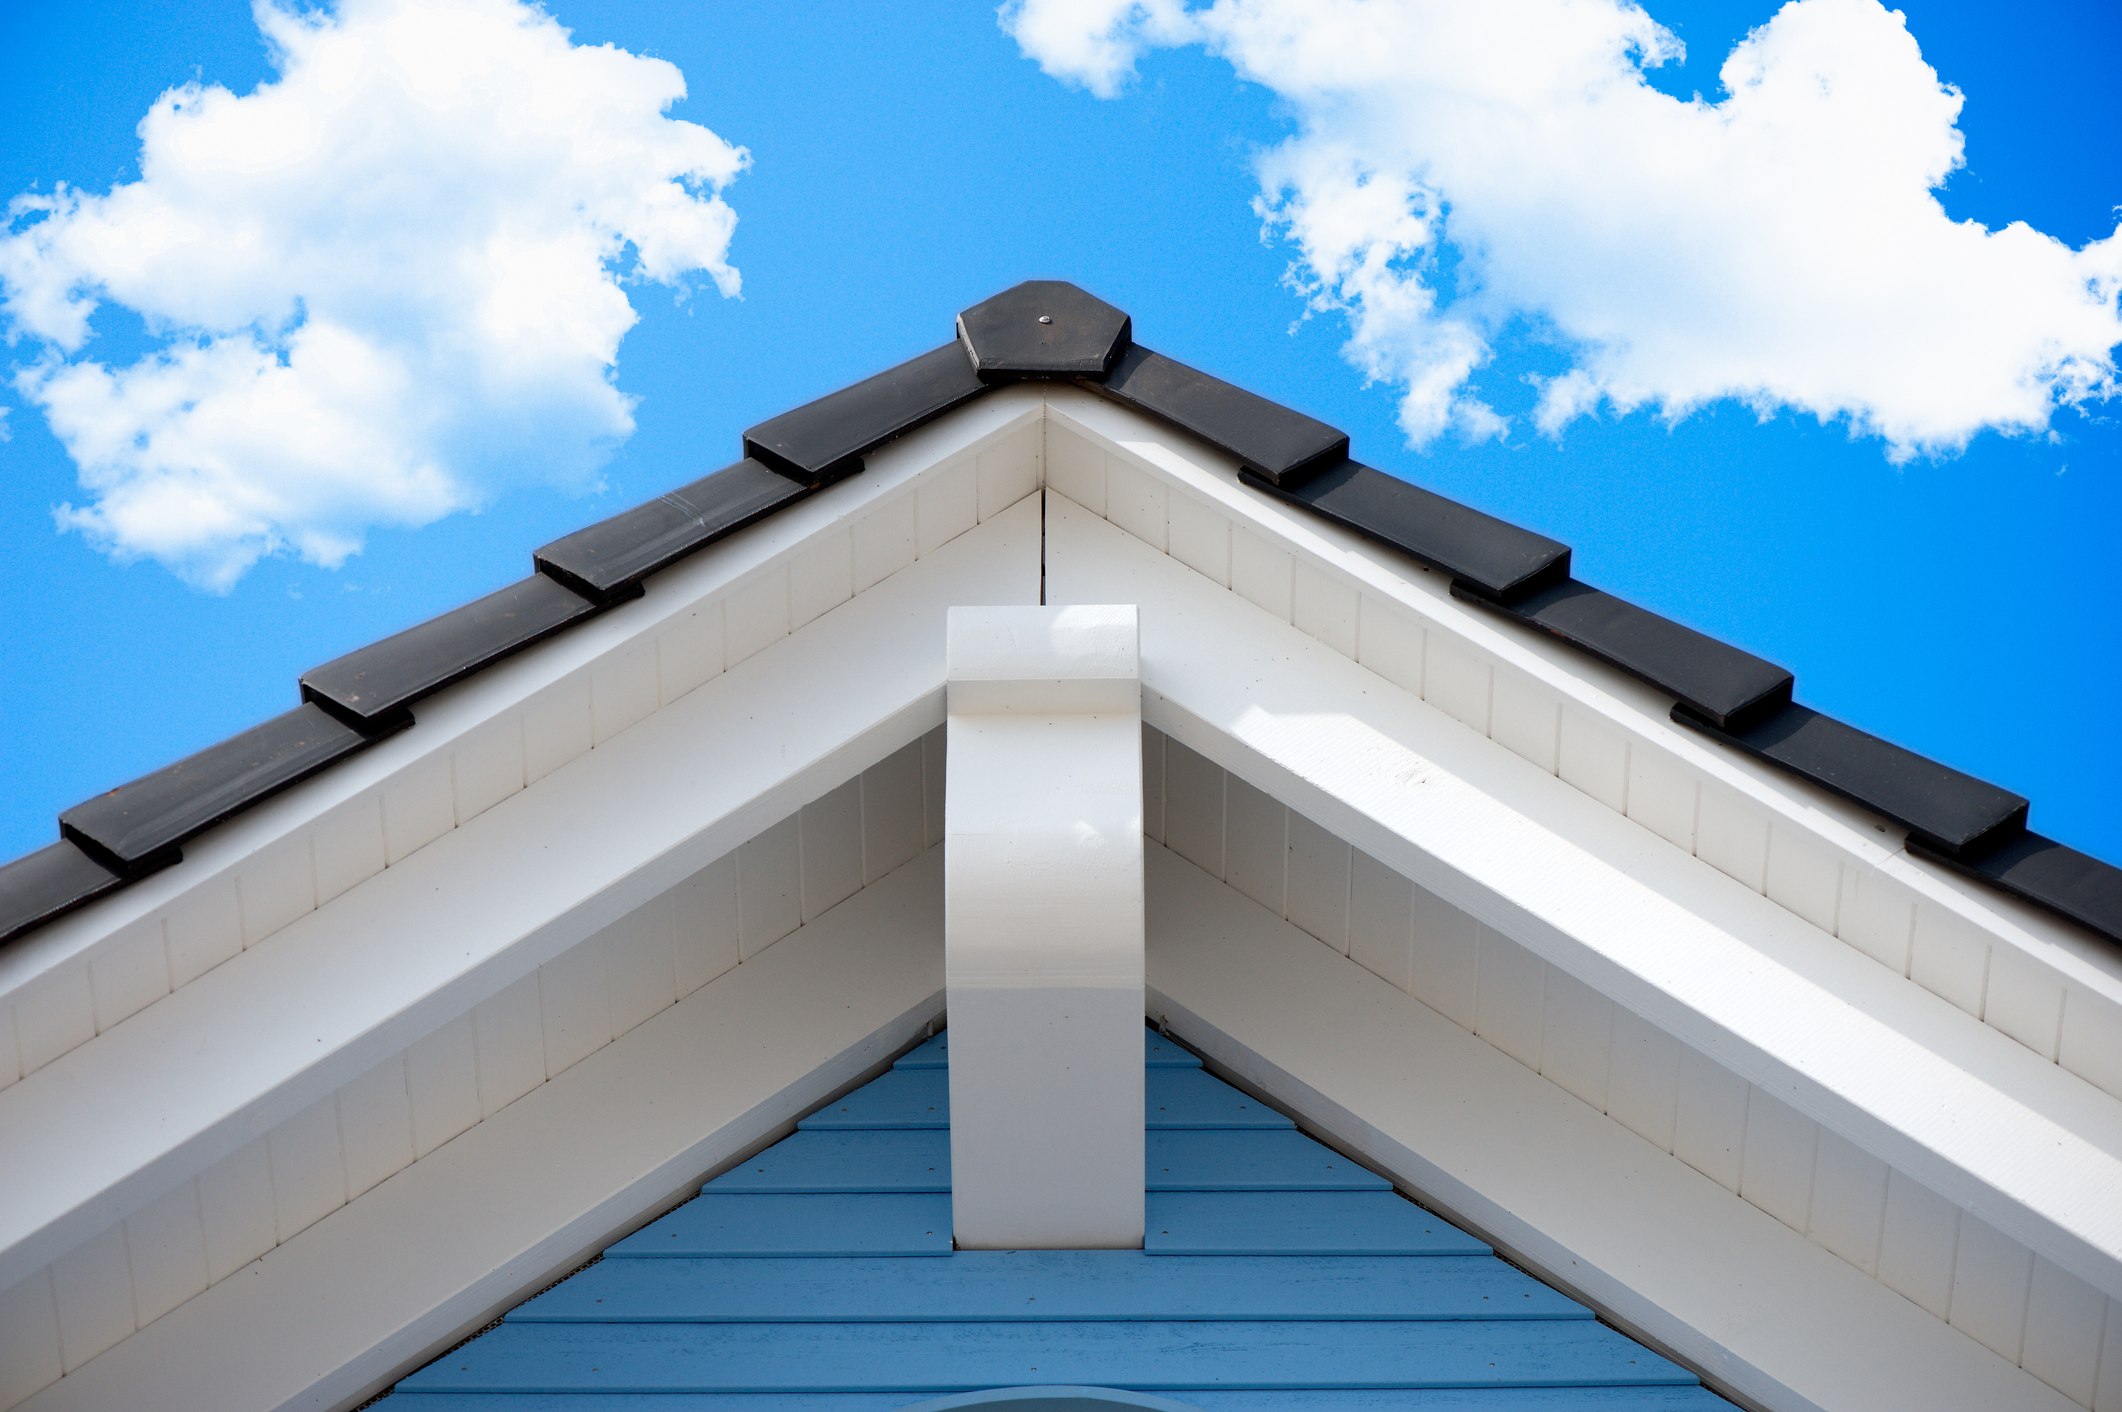 Roof Shapes: Pros and Cons